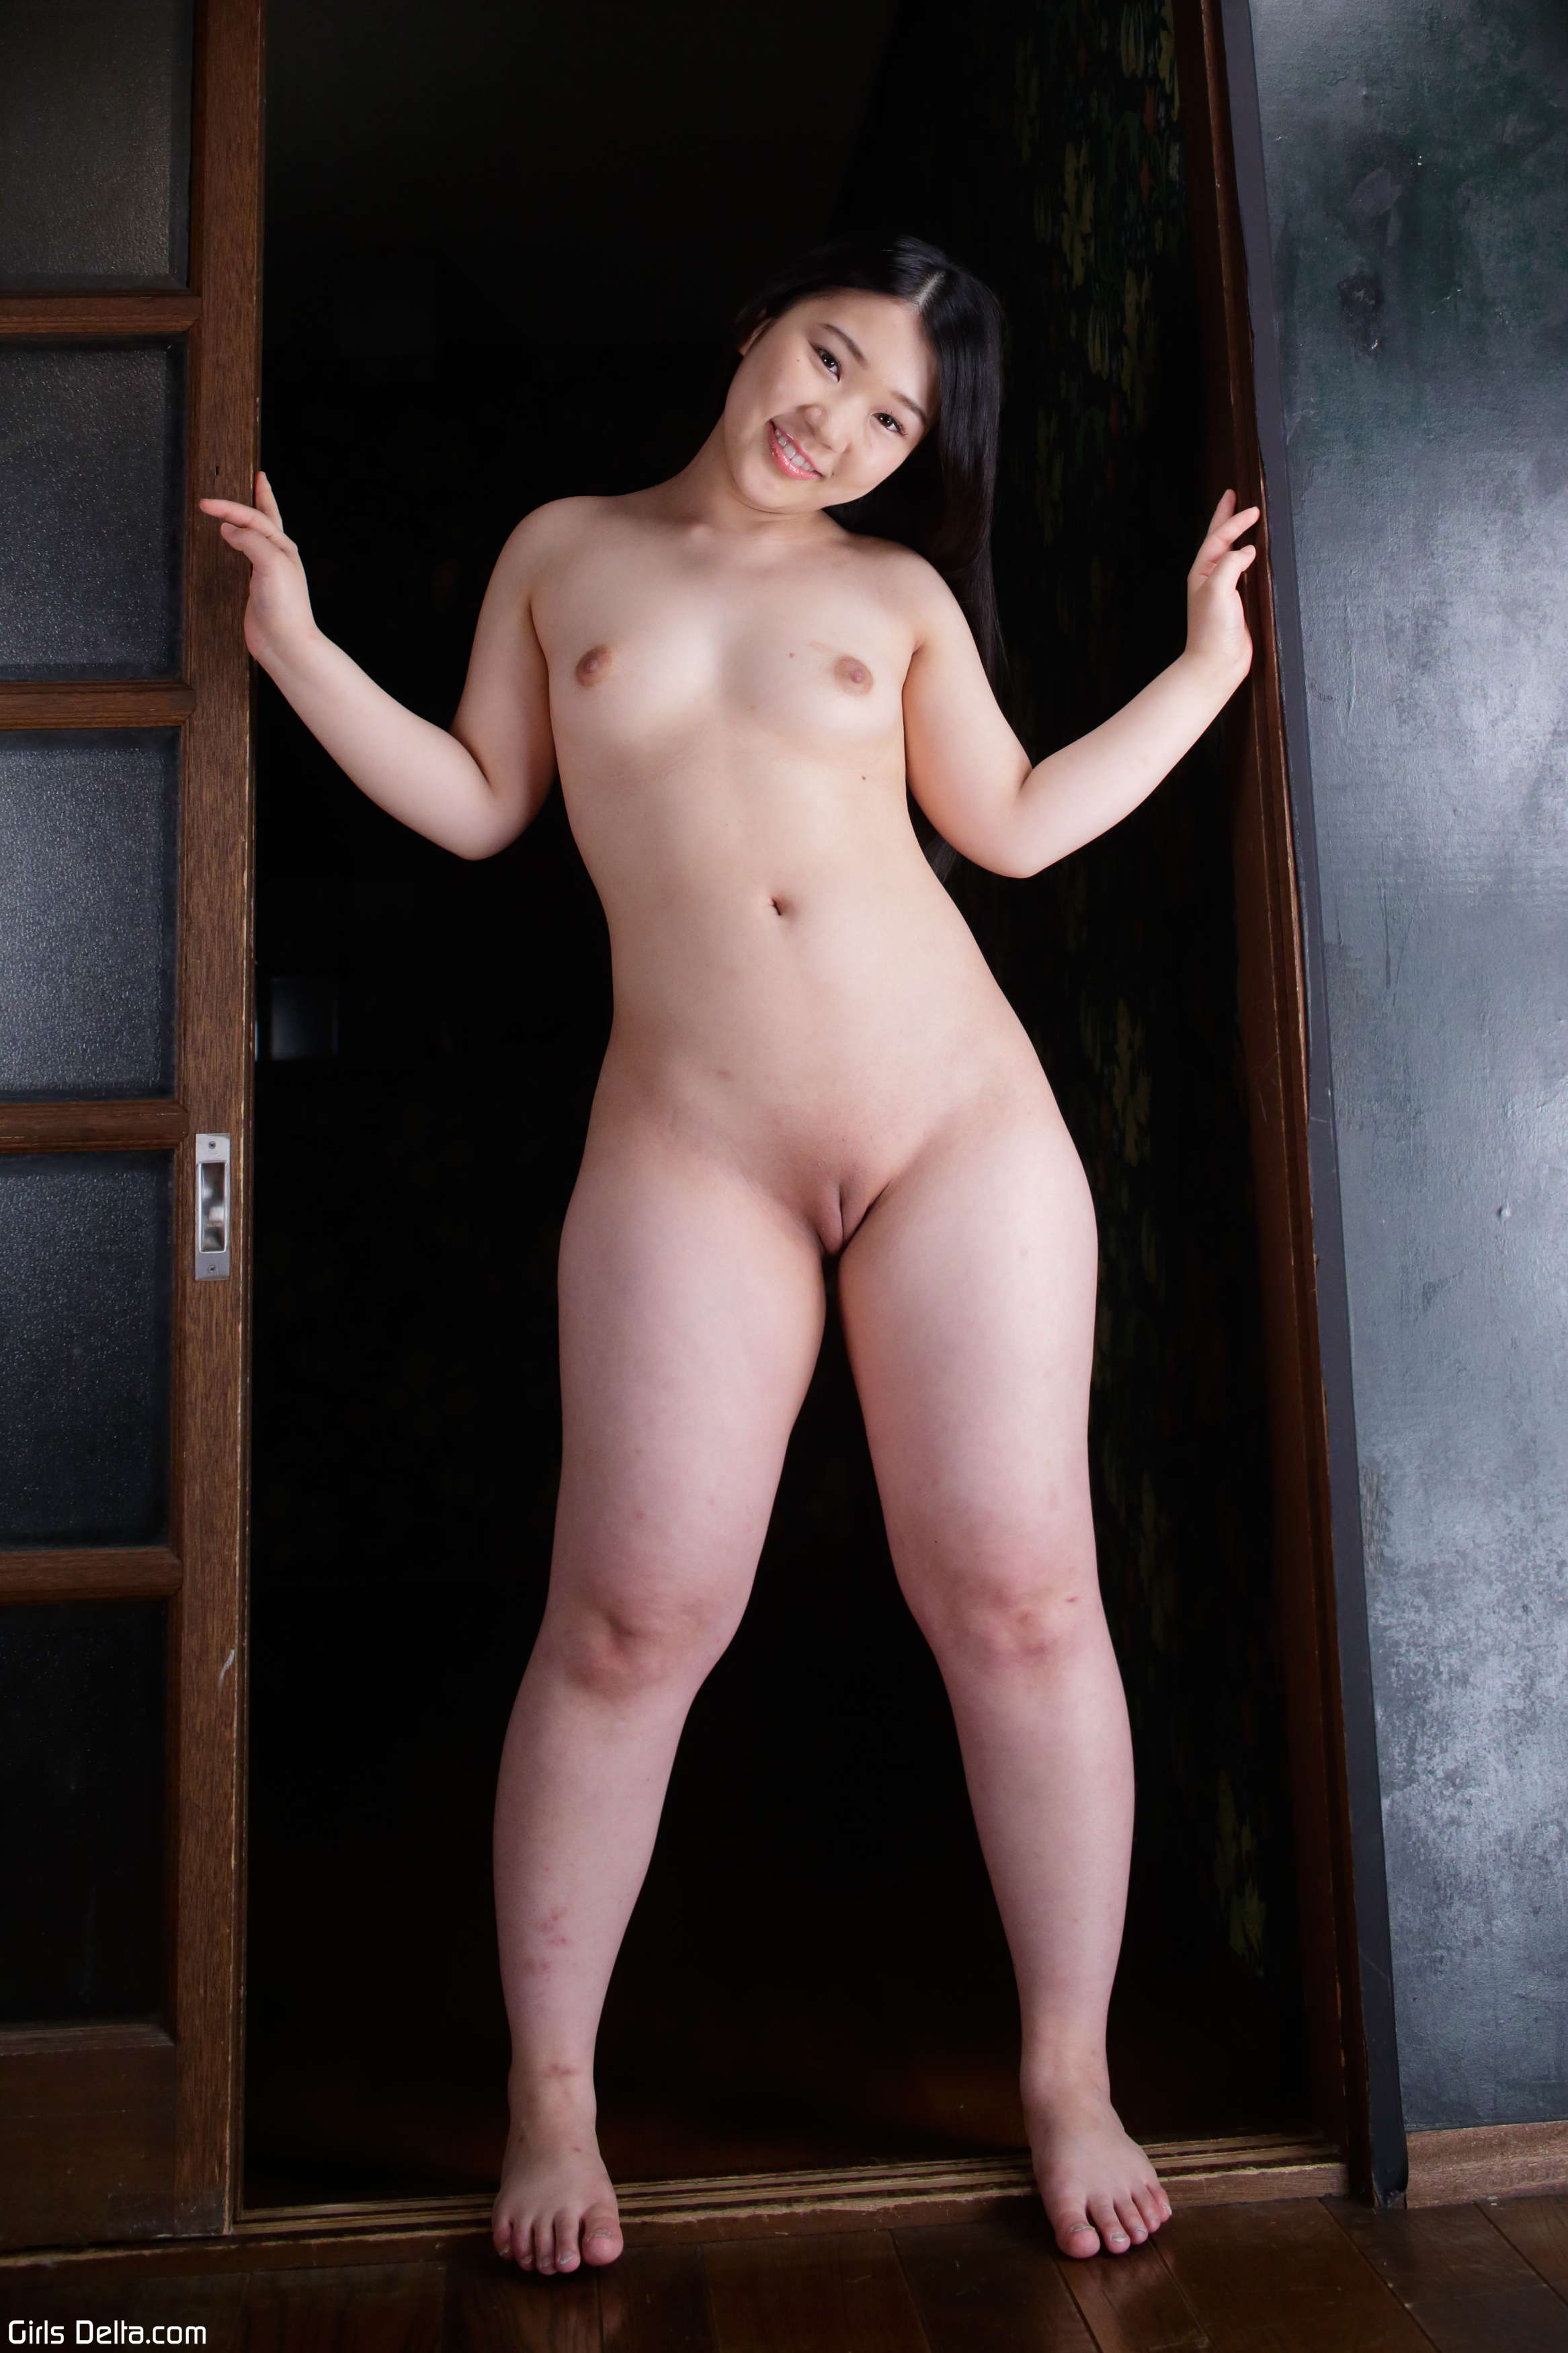 femdom threesomes free sex videos watch beautiful Asian Girlsdelta Pussy Shaved Naked Spreadingpussy Standingspreads Niceslit Showingpussy Lickablepussy